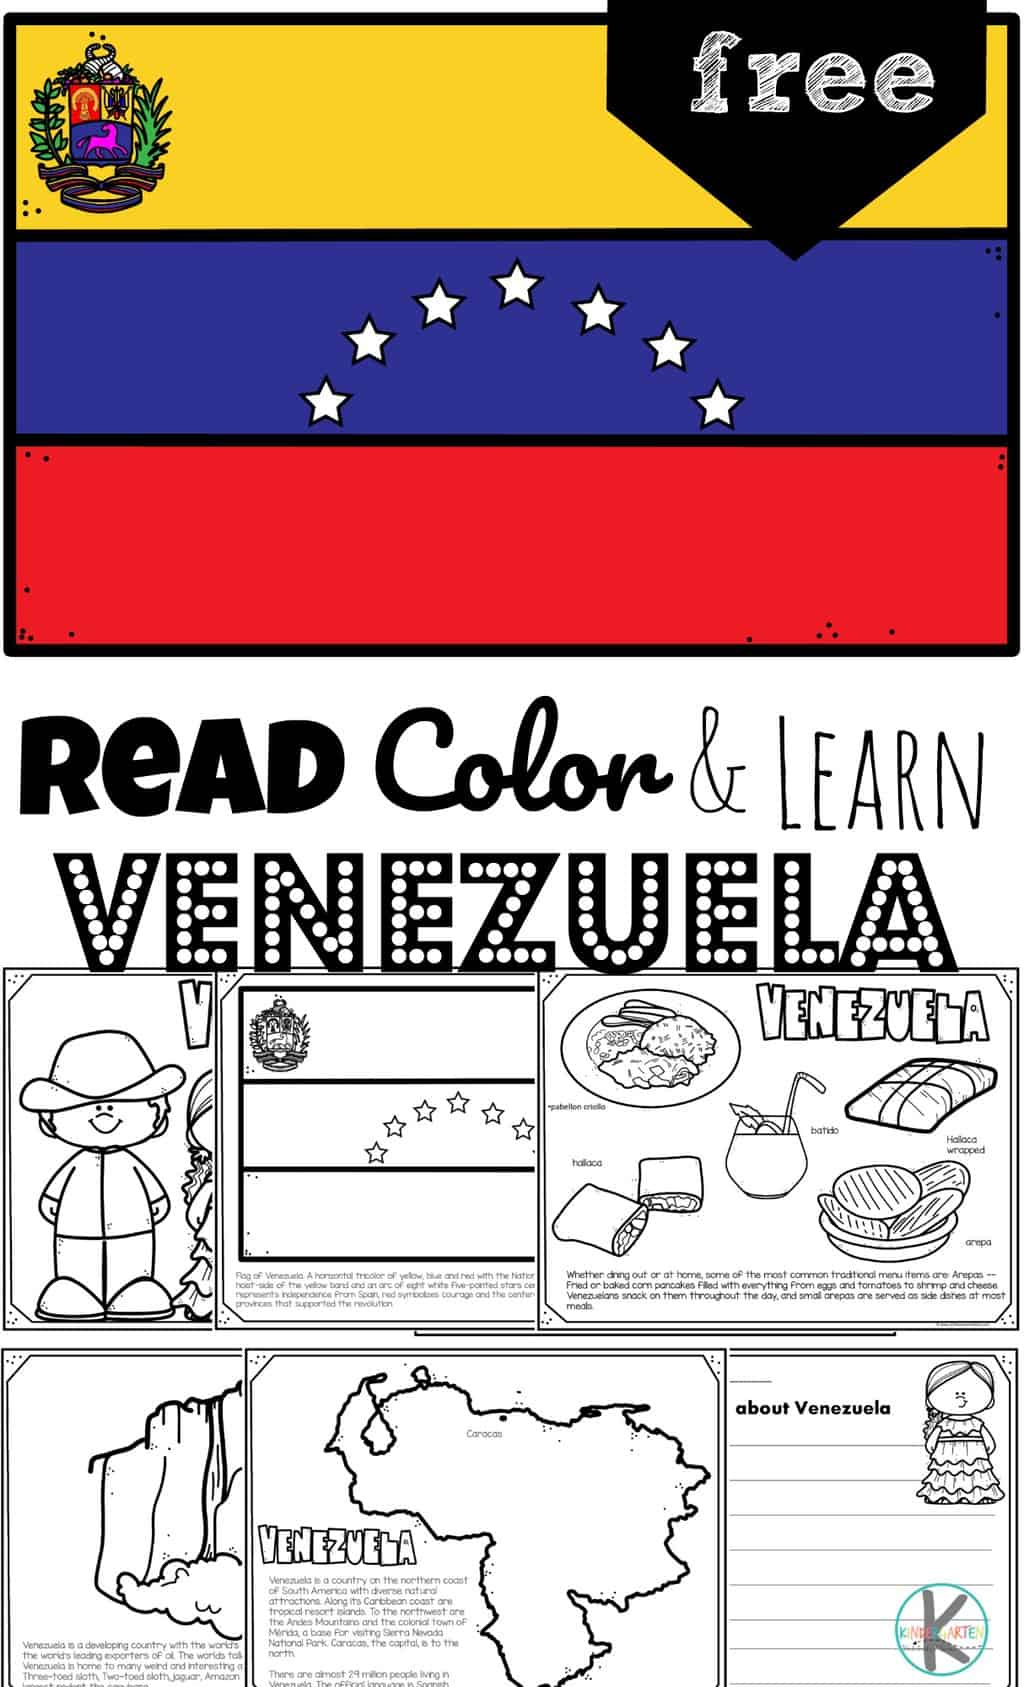 Free Read Color And Learn About Venezuela For Kids